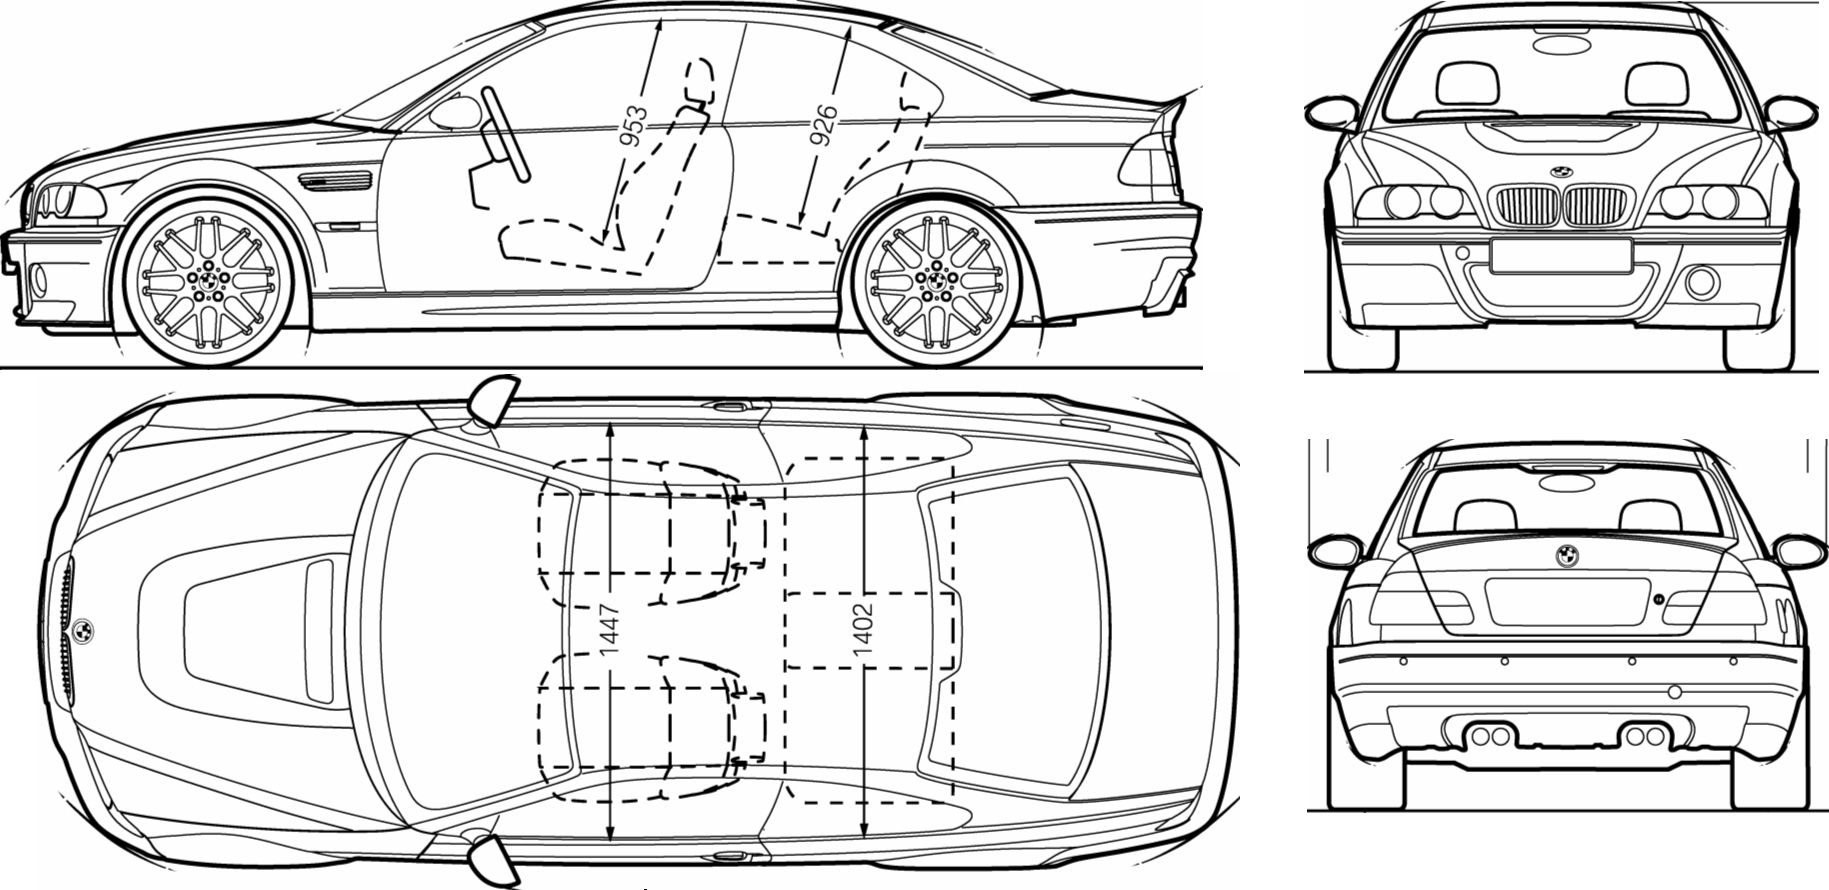 Bmw M3 Csl Blueprint